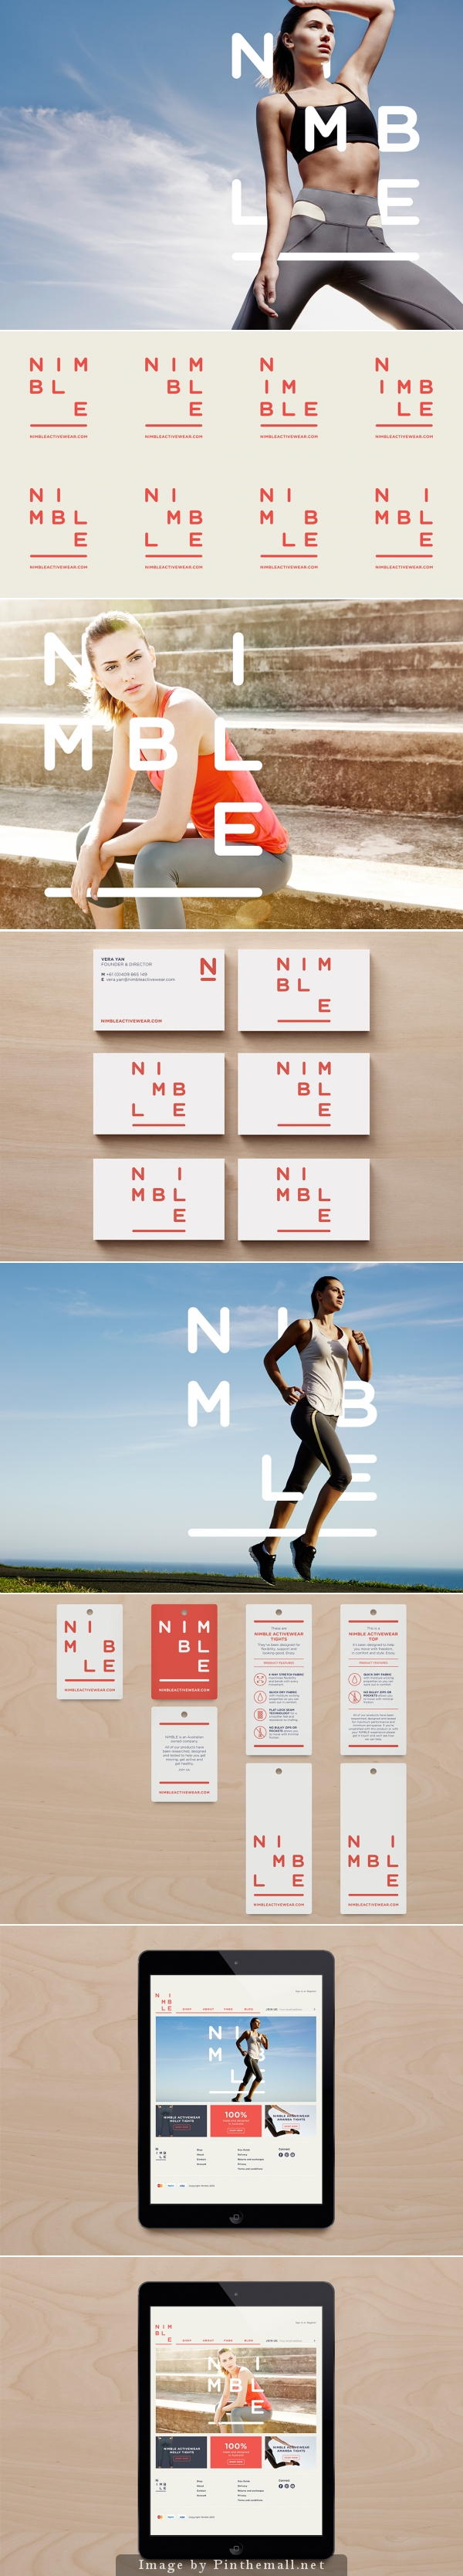 Nimble identity by Christopher Doyle & Co